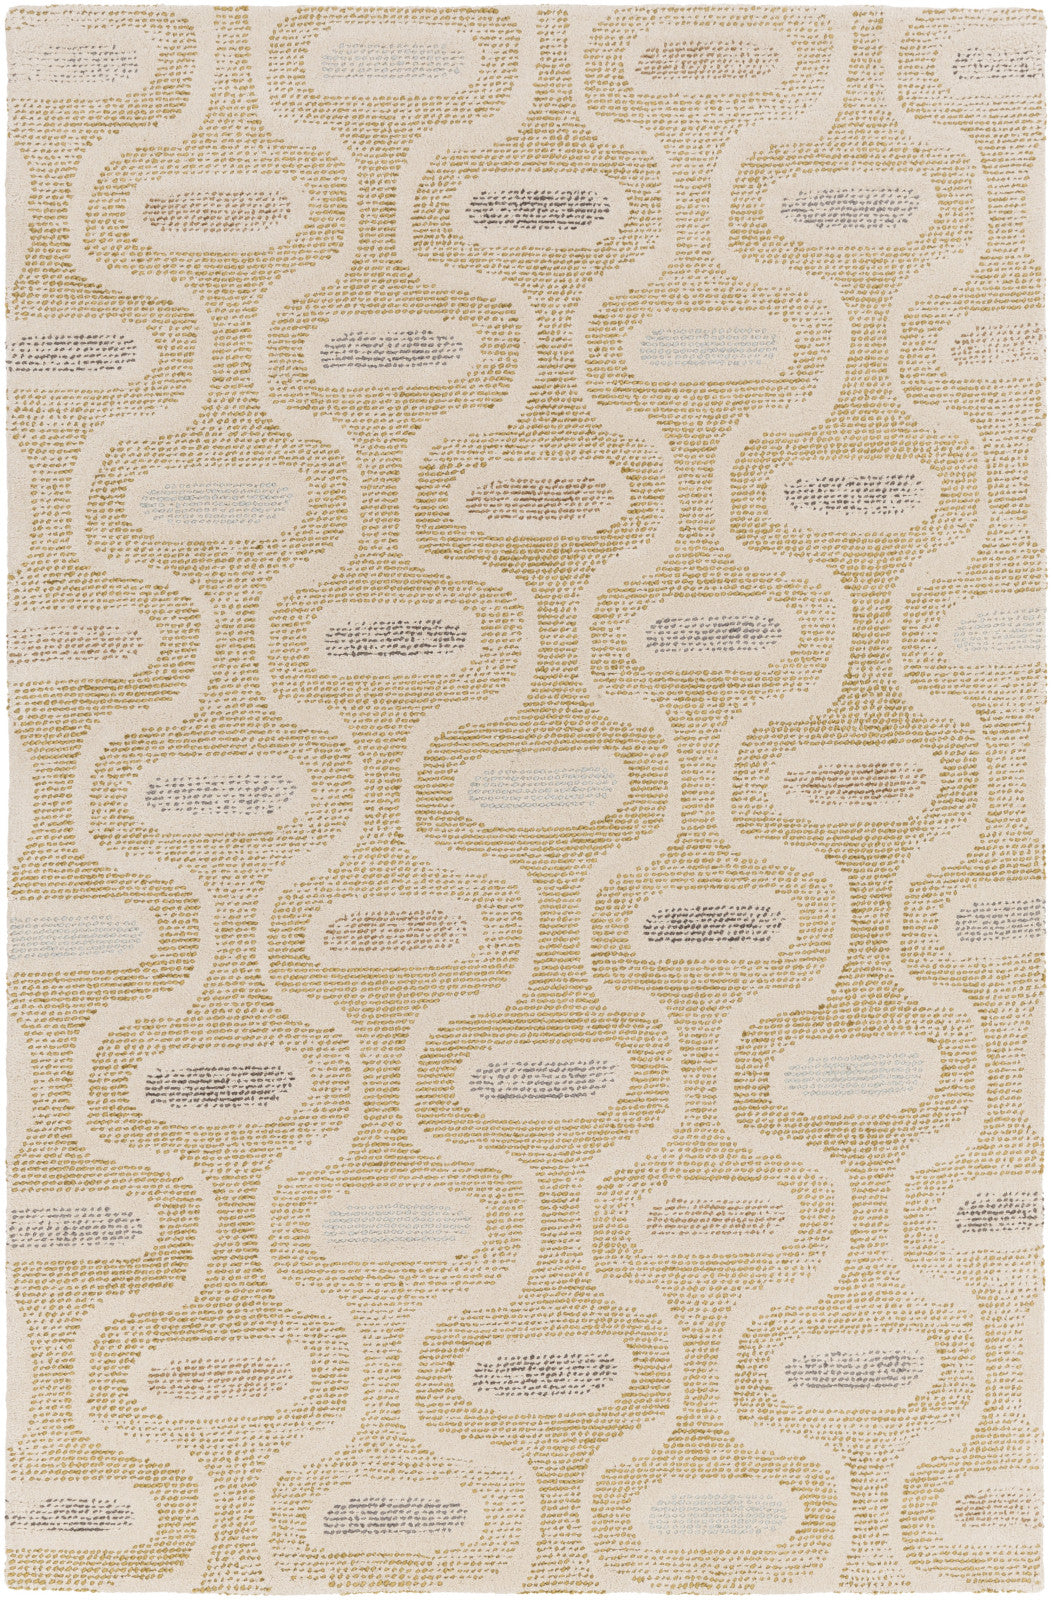 Melody MDY-2013 White Area Rug by Surya